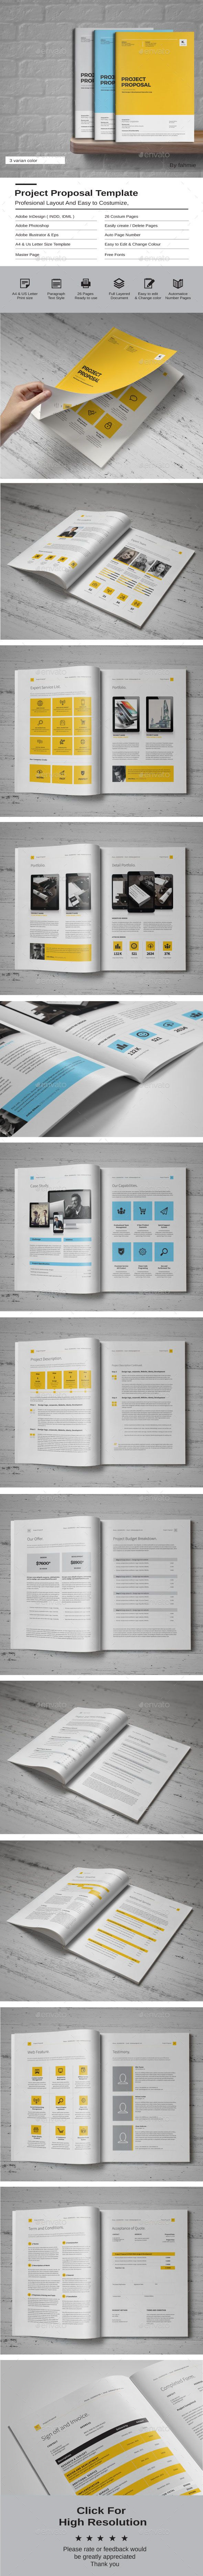 action research proposal template%0A Buy Proposal Template by fahmie on GraphicRiver  LIVE PRIVIEW YELLOW  Professional Project Proposal template for creative businesses  created in  Adobe